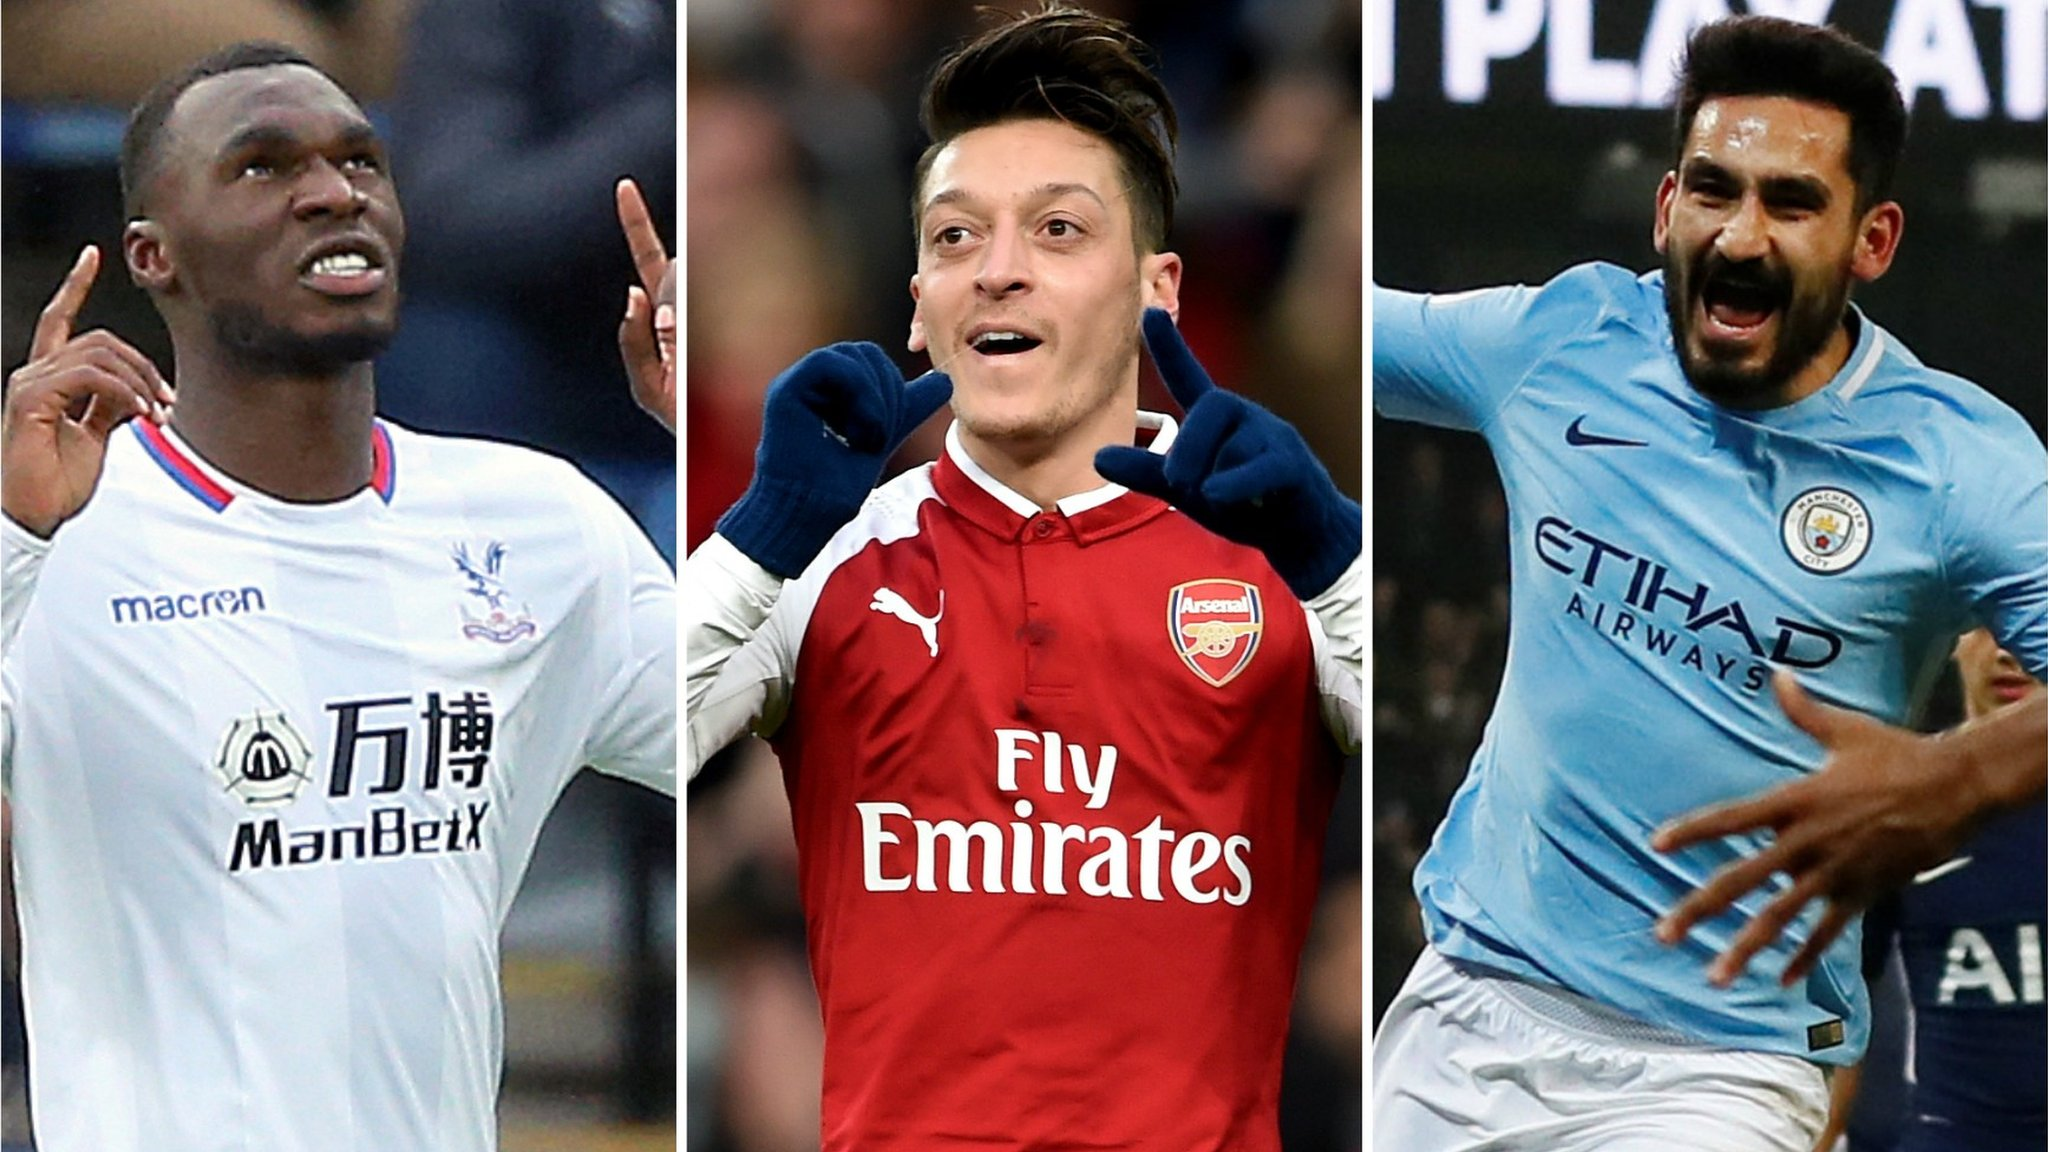 What happened on Saturday in the Premier League?